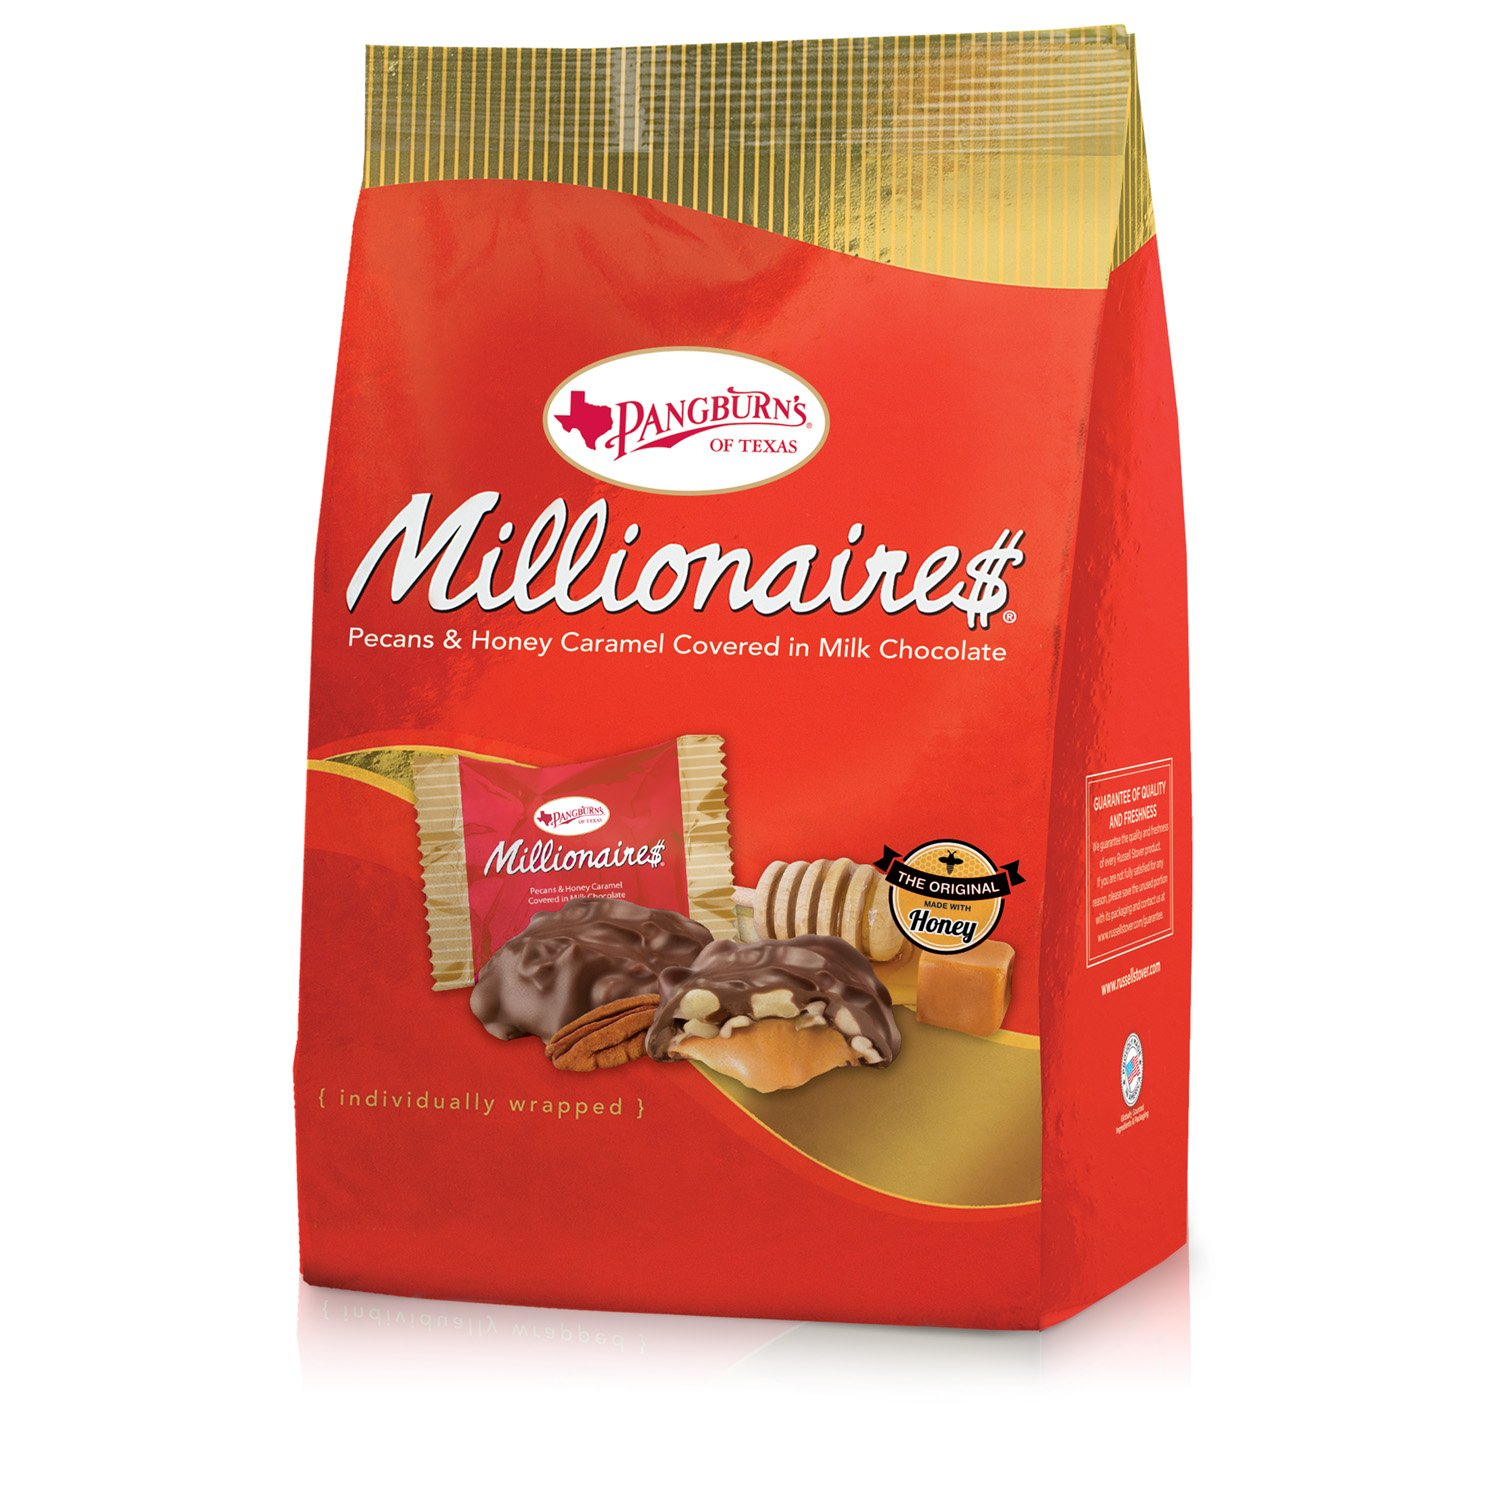 Pangburn's Millionaires, 16.75 Ounce Bag (4 Count) by Pangburn's